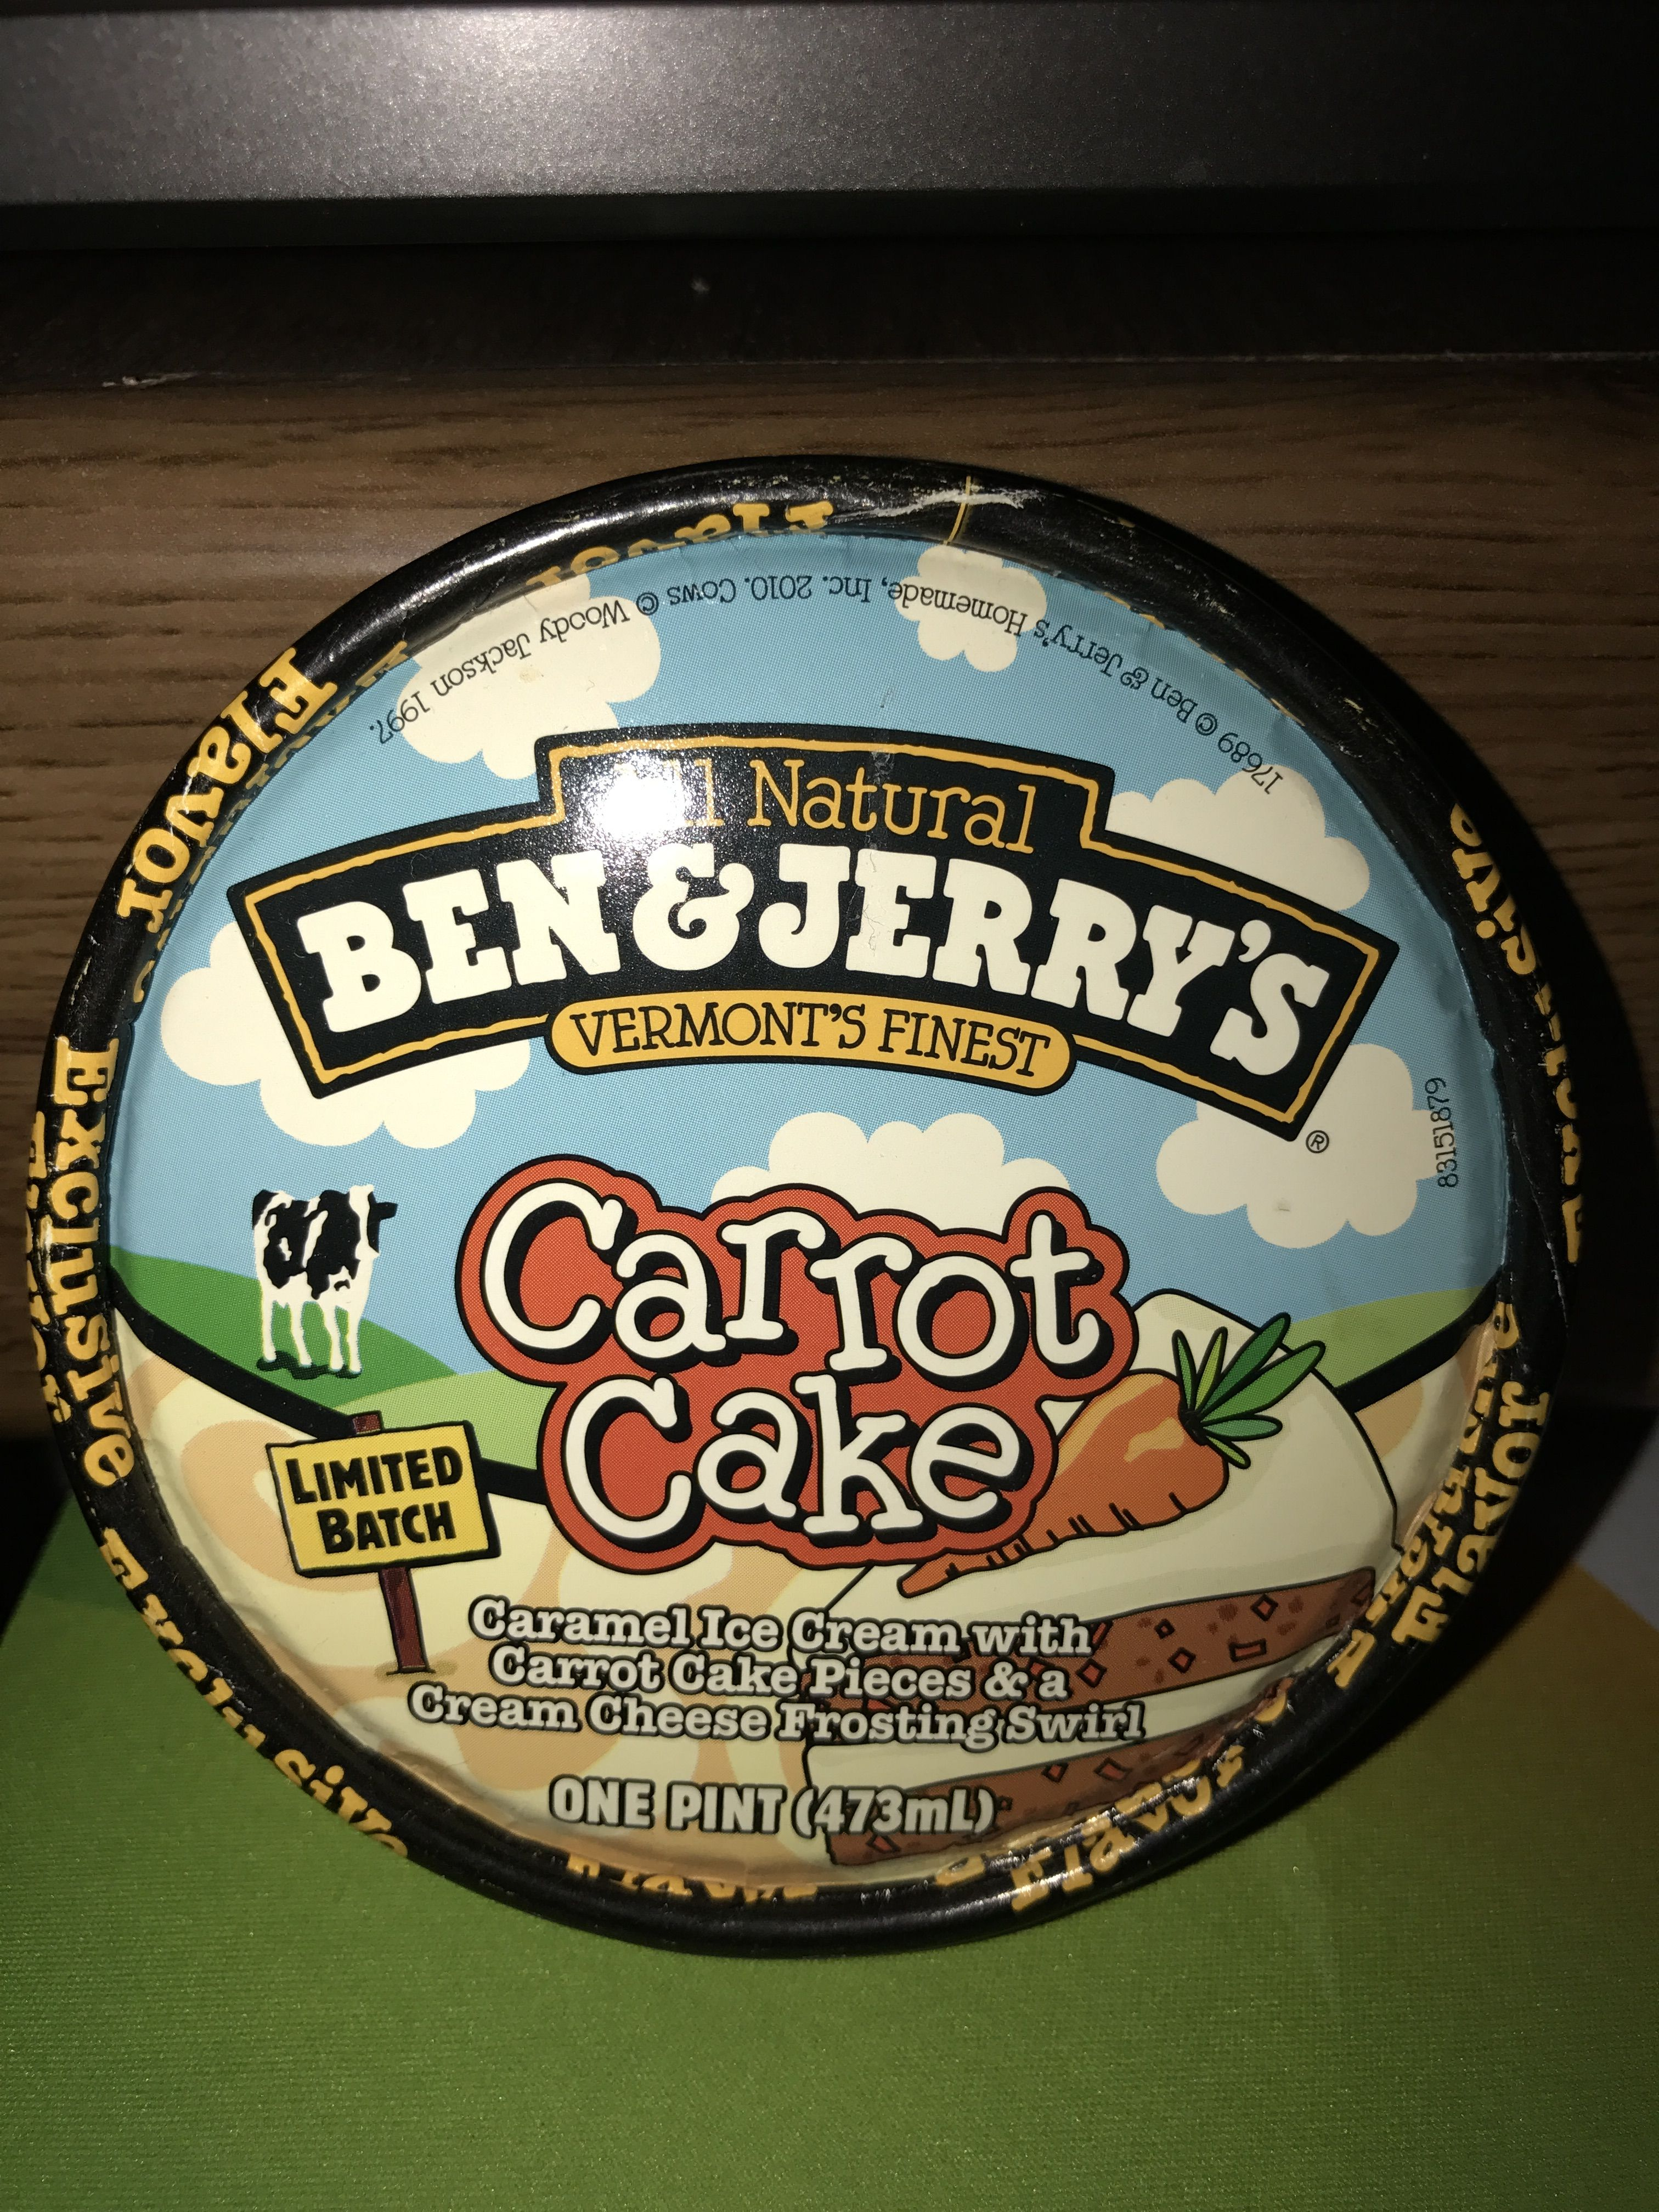 All natural ben jerrys vermonts finest carrot cake